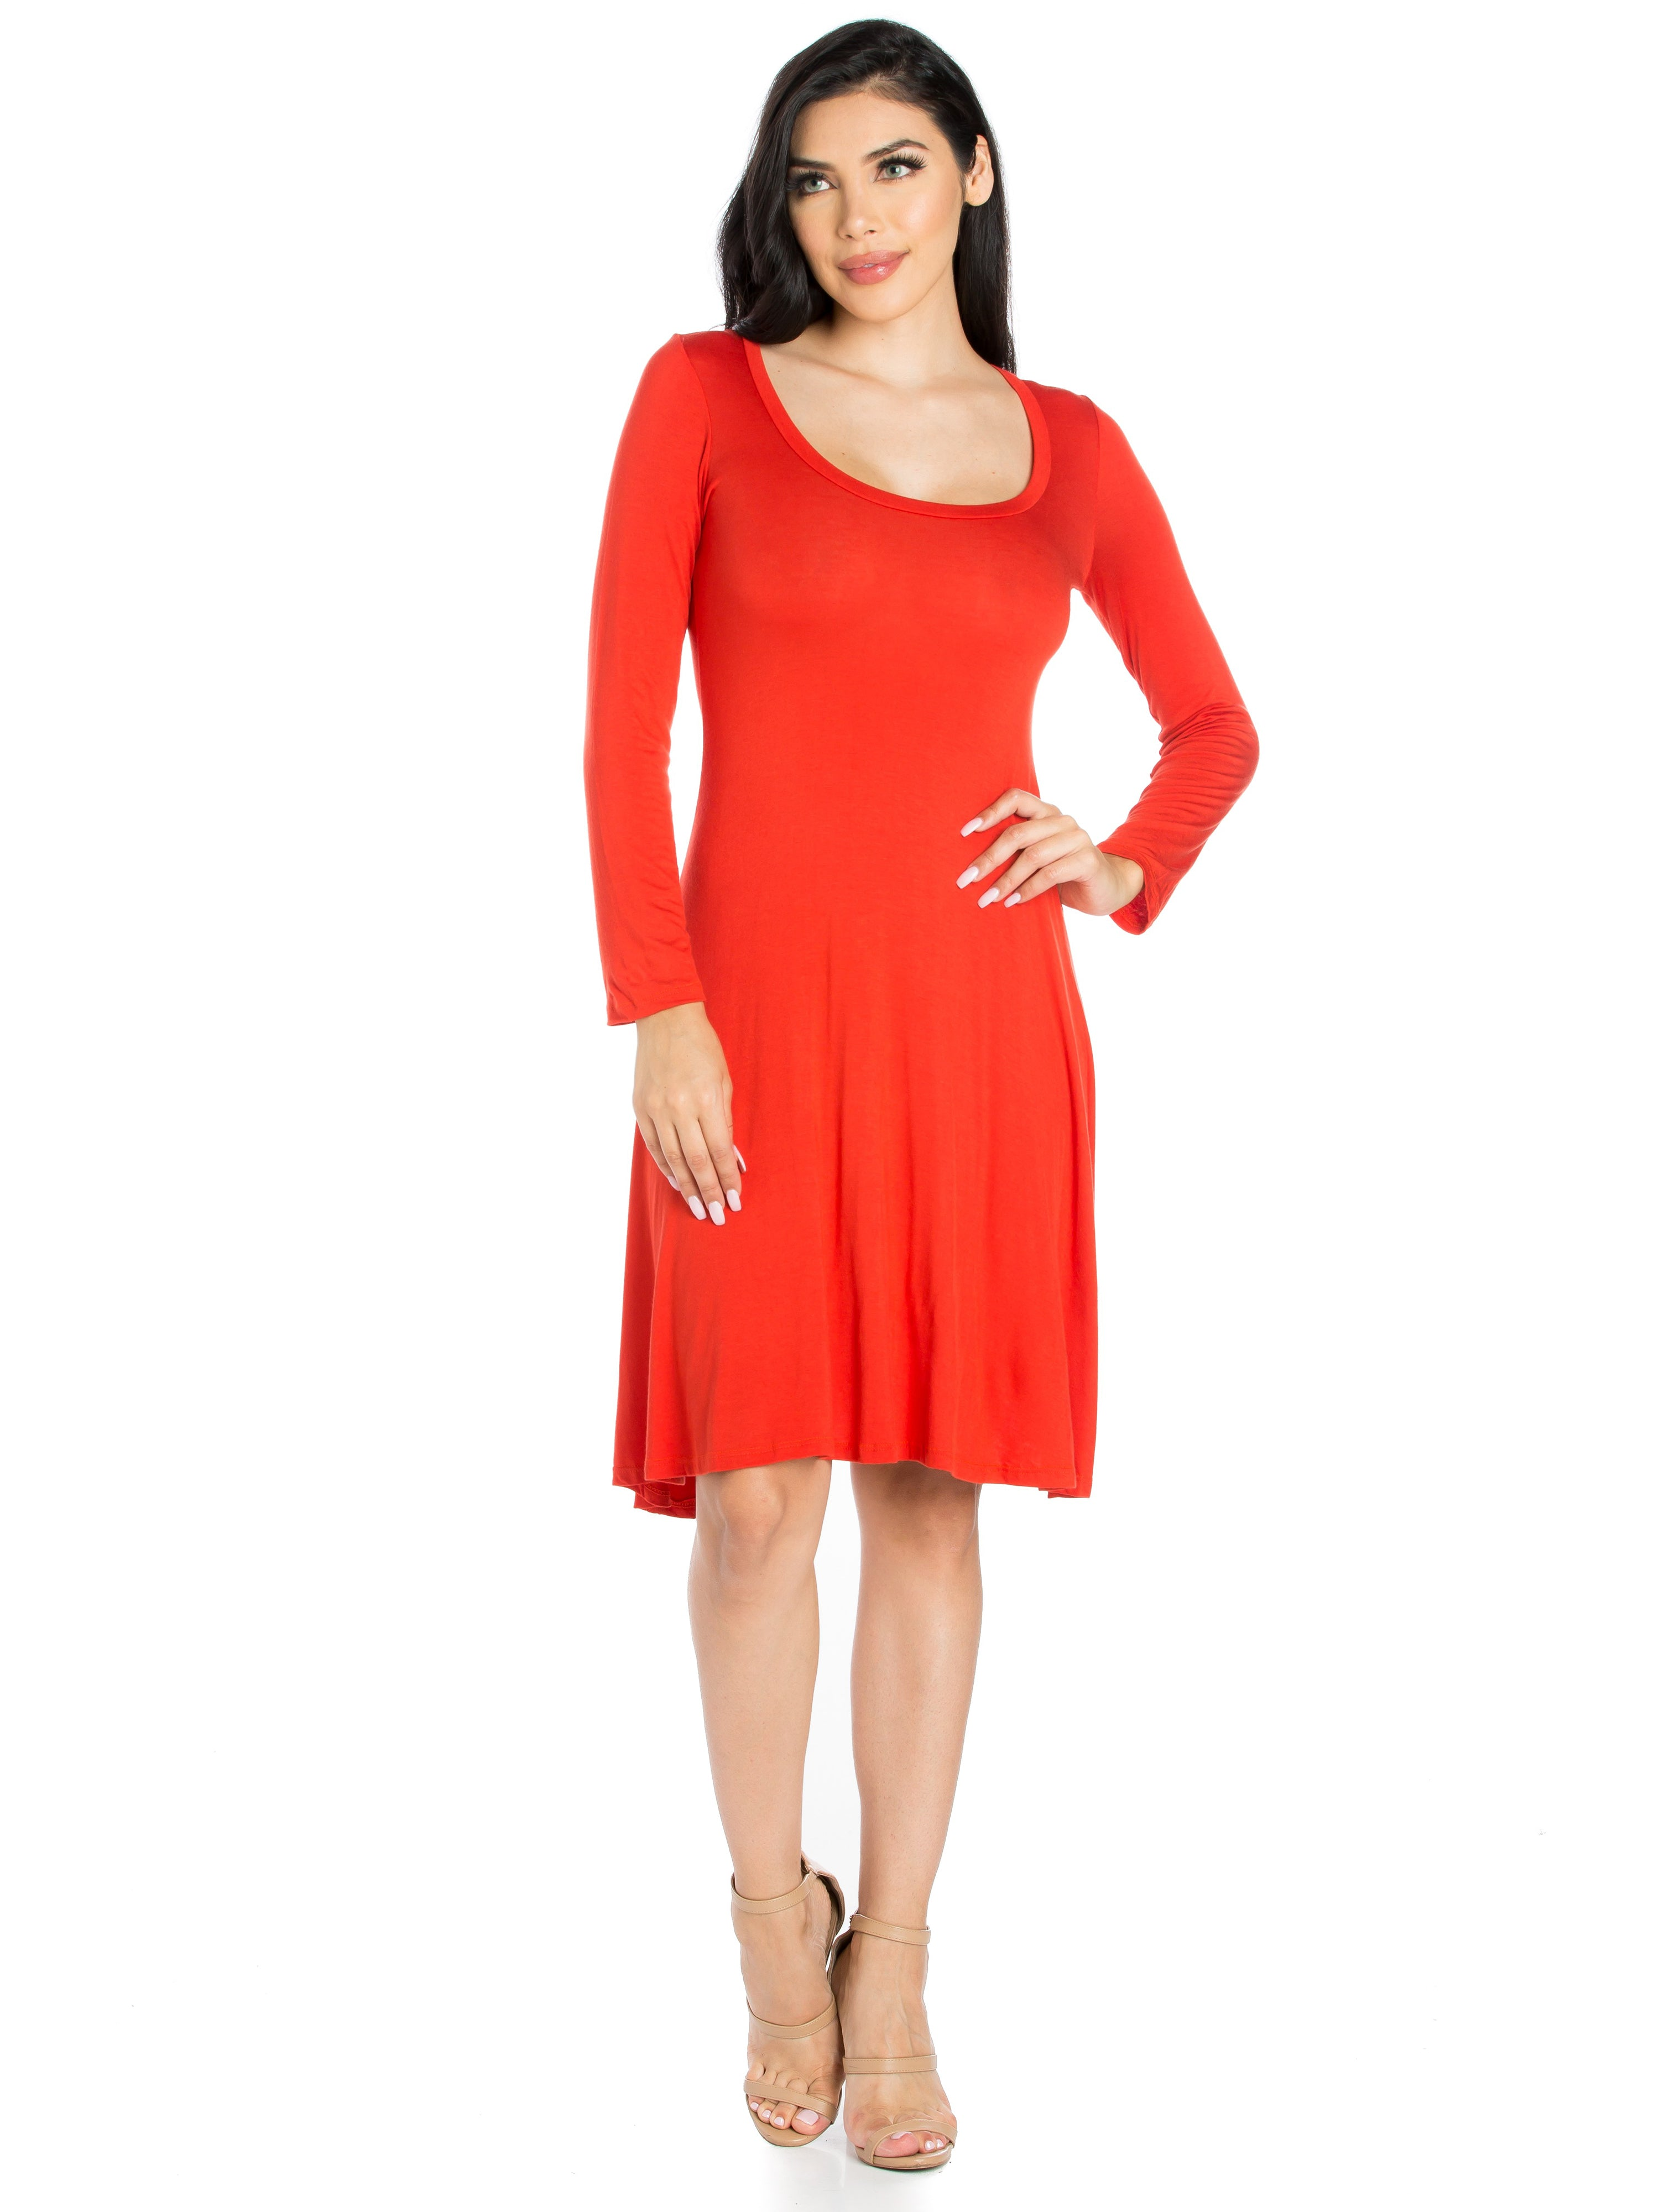 24seven Comfort Apparel Classic Long Sleeve Flared Mini Dress-Dresses-24Seven Comfort Apparel-RUST-S-24/7 Comfort Apparel